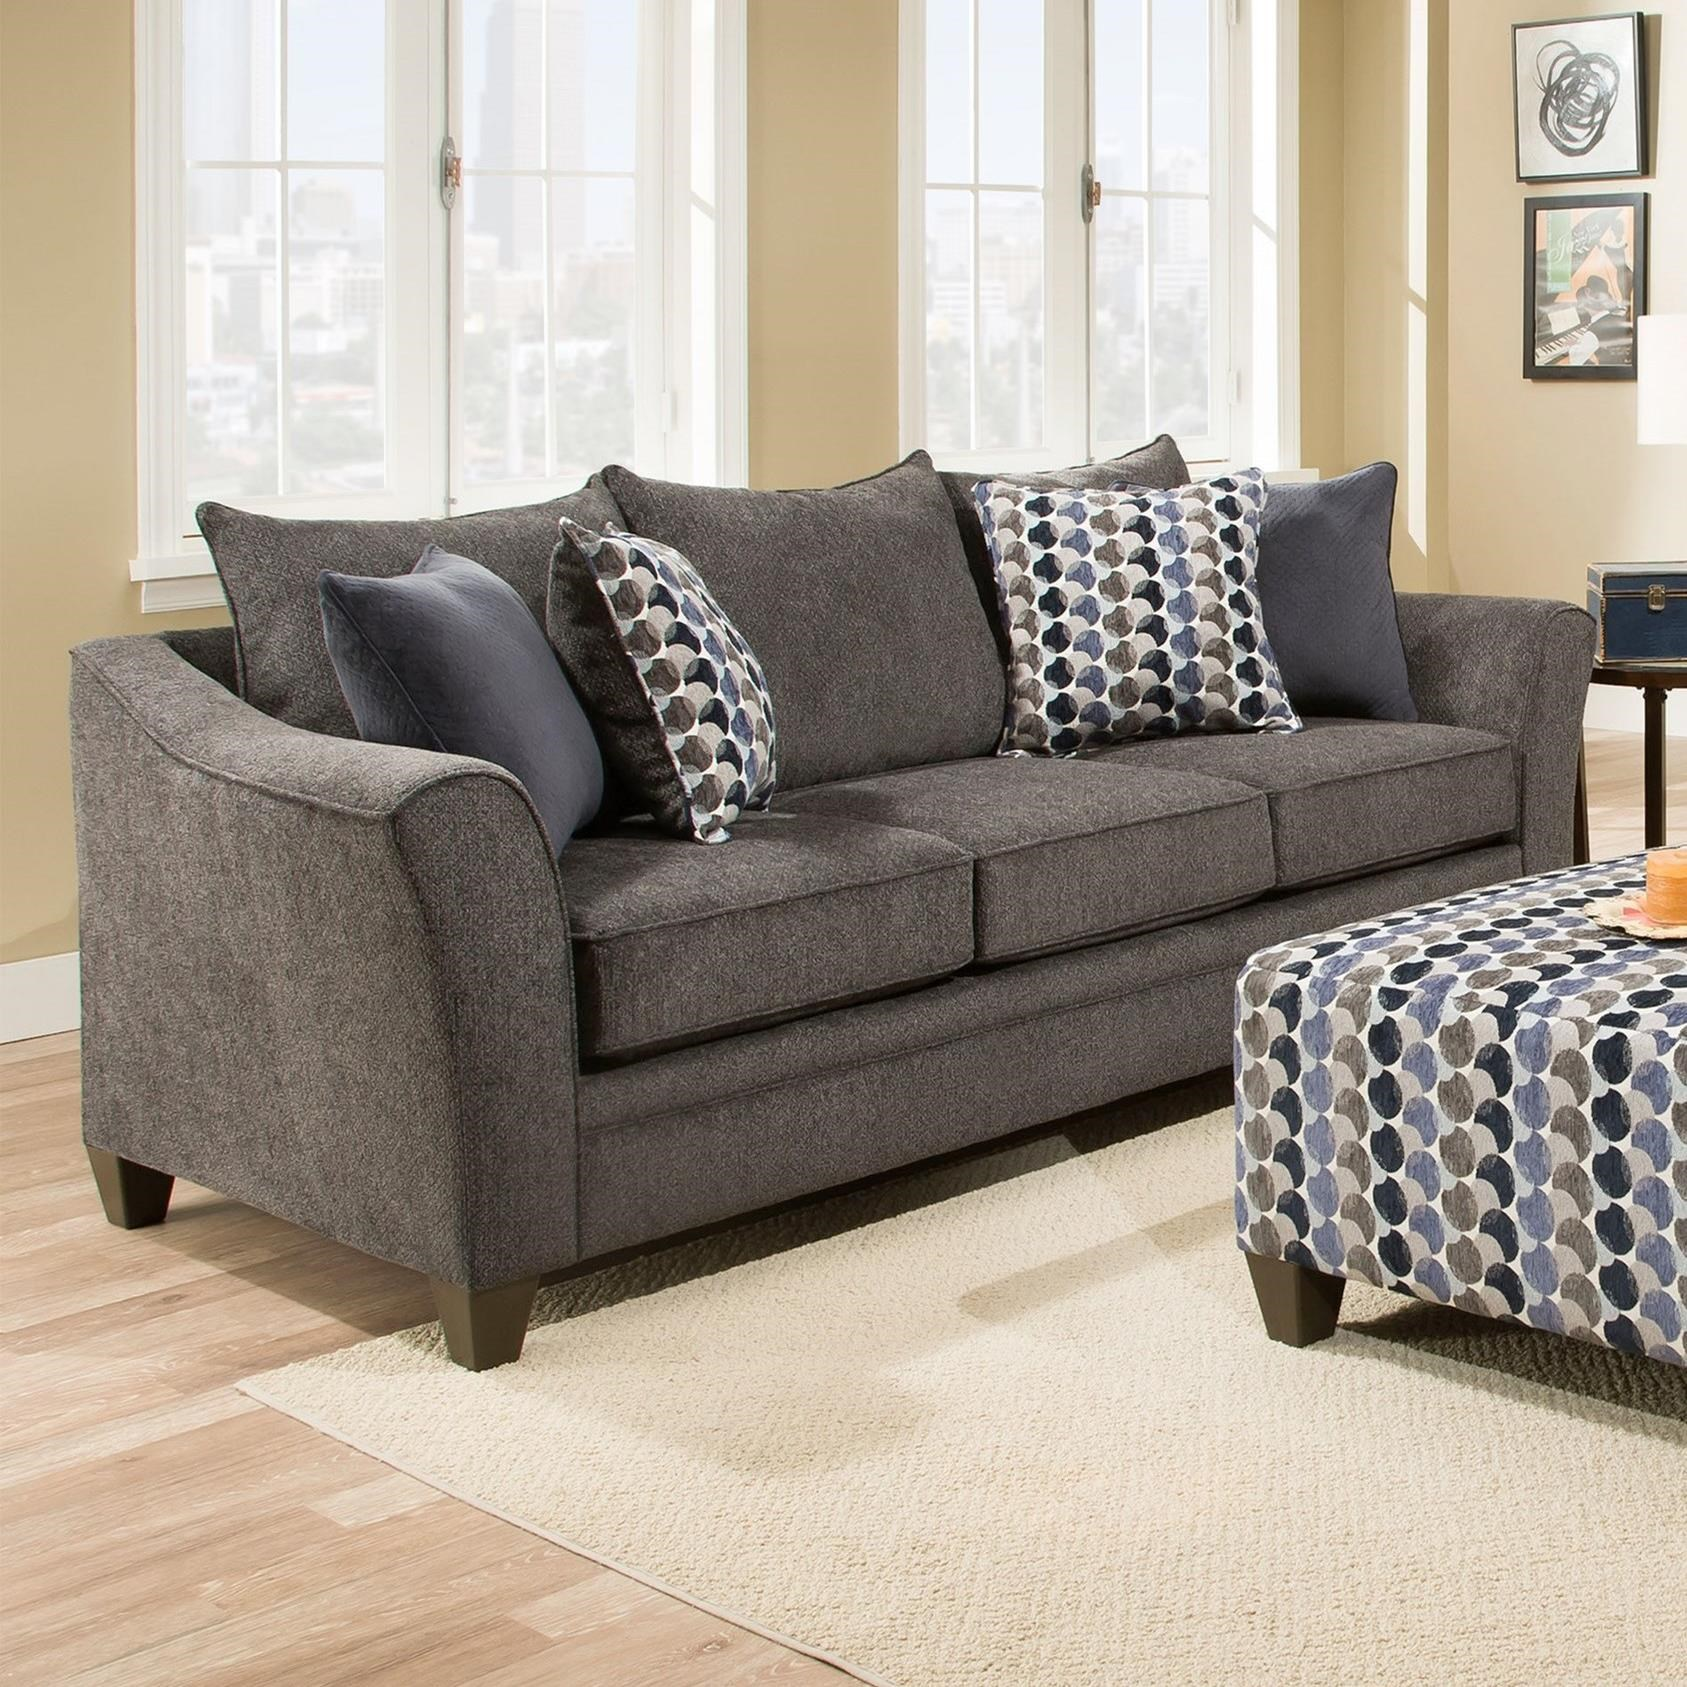 United Furniture Industries 6485 Transitional Sofa - Item Number: 6485Sofa-AlbanySlate